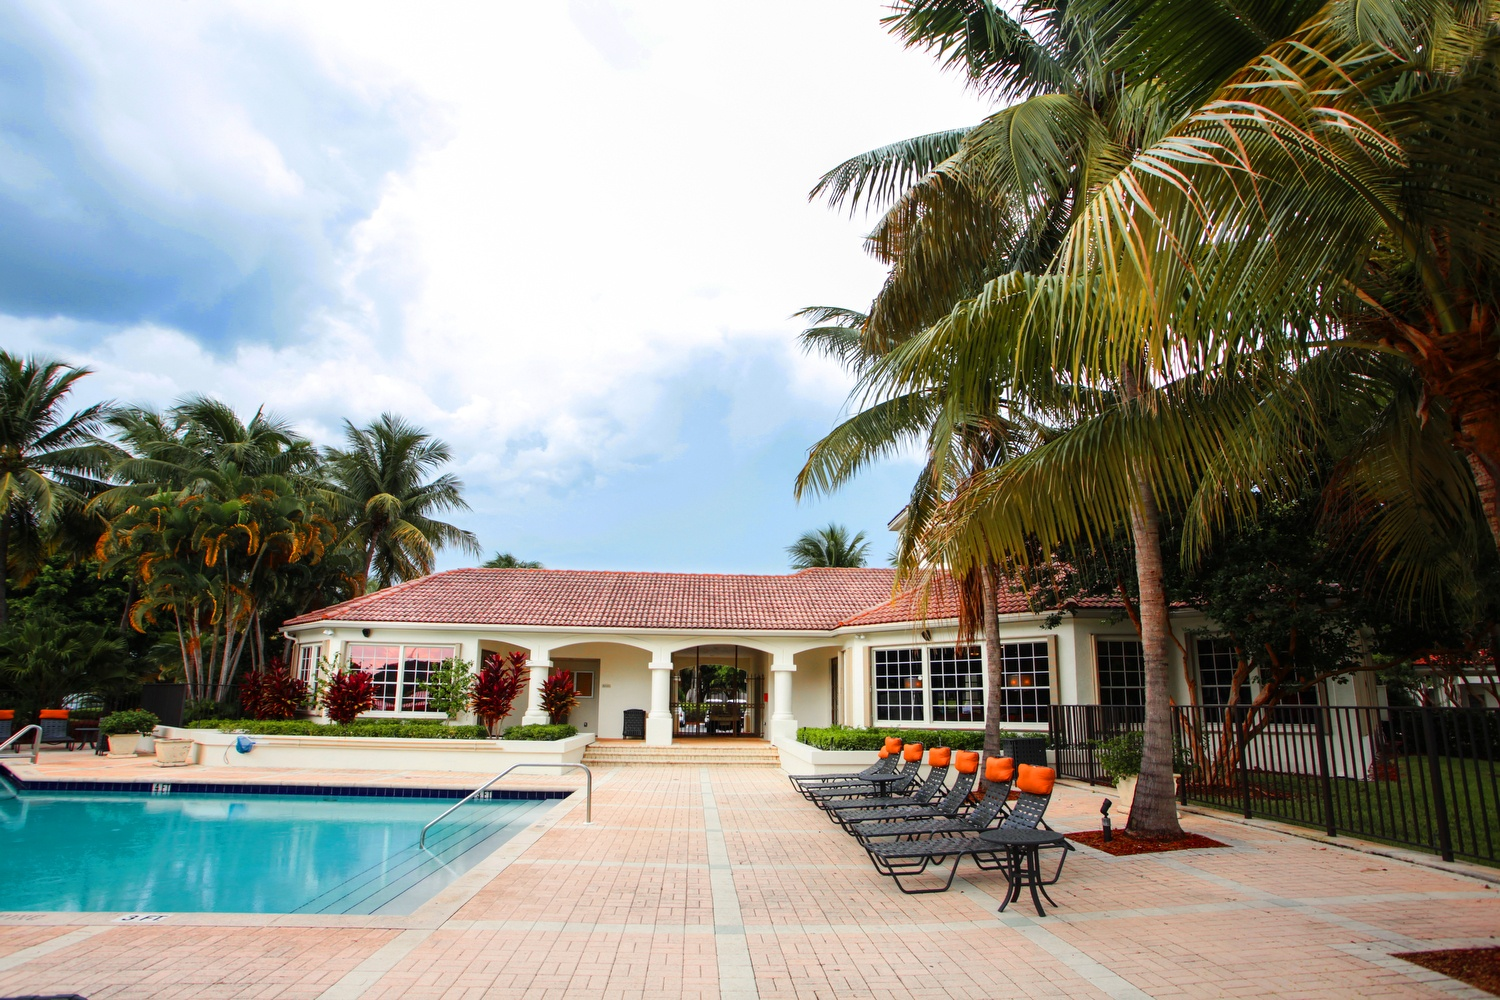 Take a sip in our Delray Beach swimming pool.